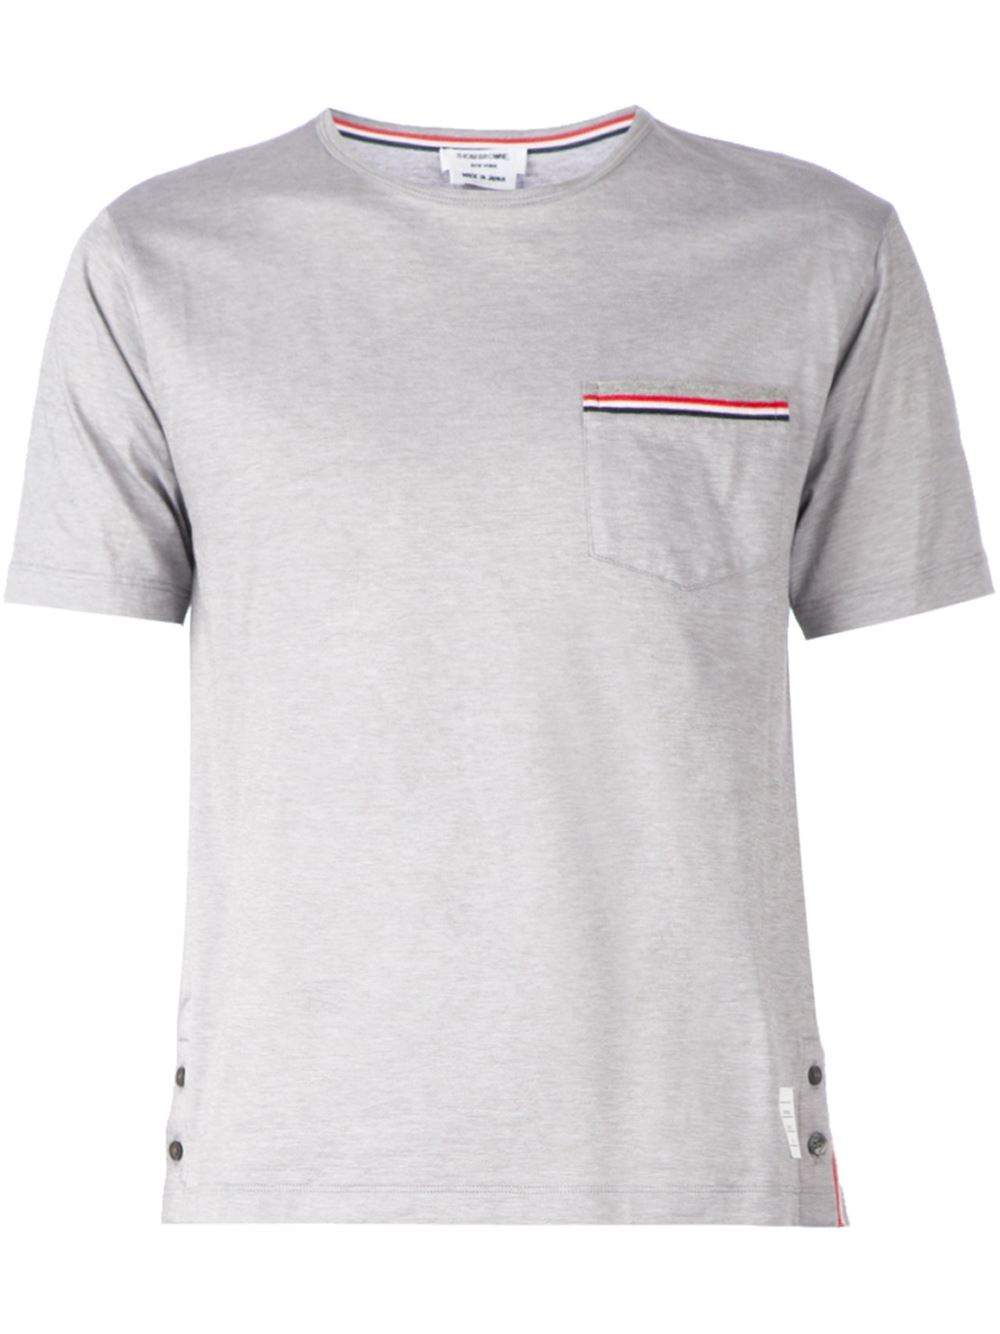 Thom browne chest pocket t shirt in gray for men lyst for Thom browne t shirt